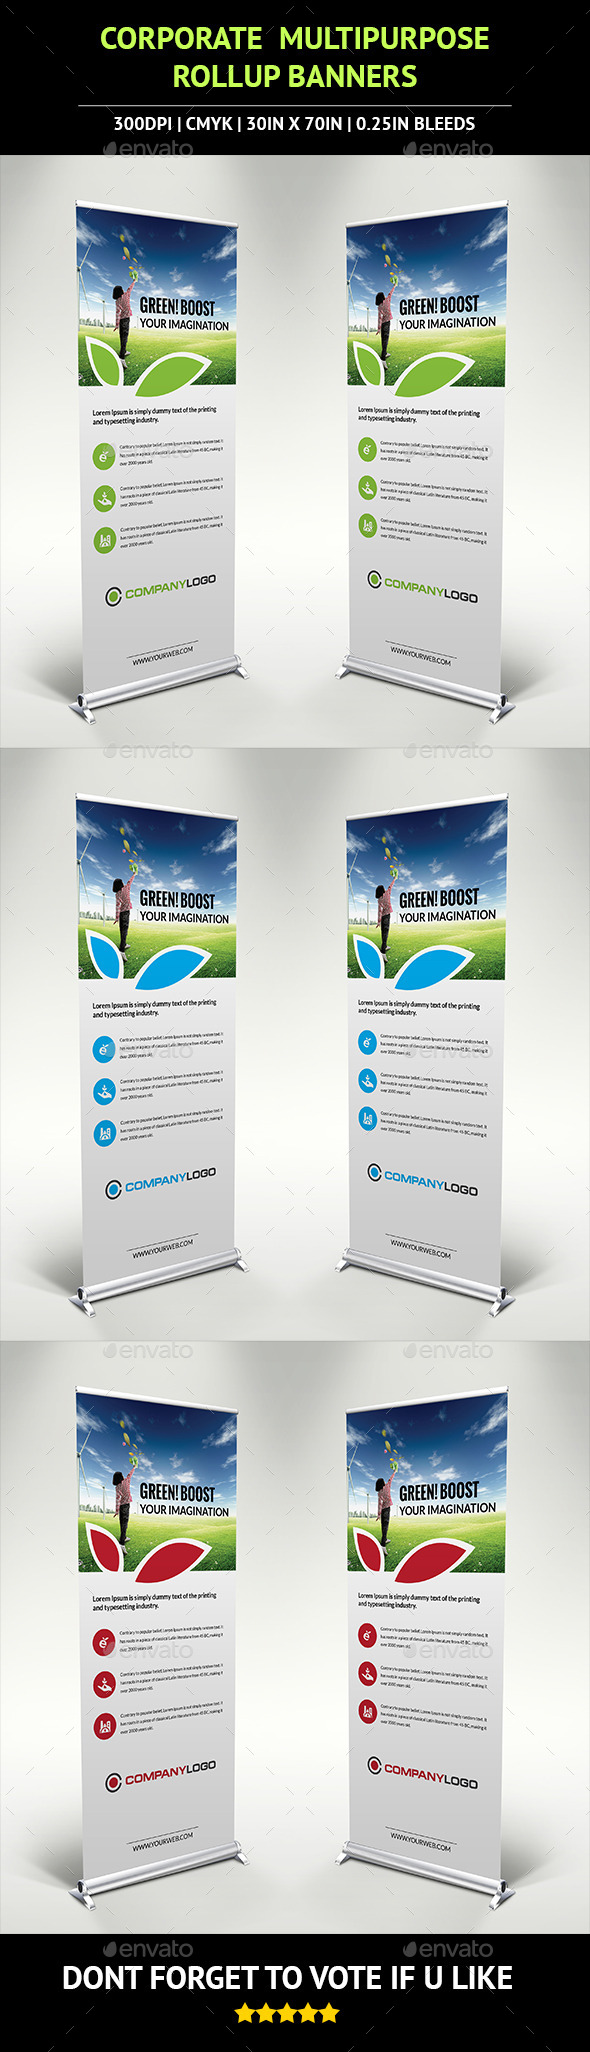 GraphicRiver Corporate Rollup Banner v3 10221218